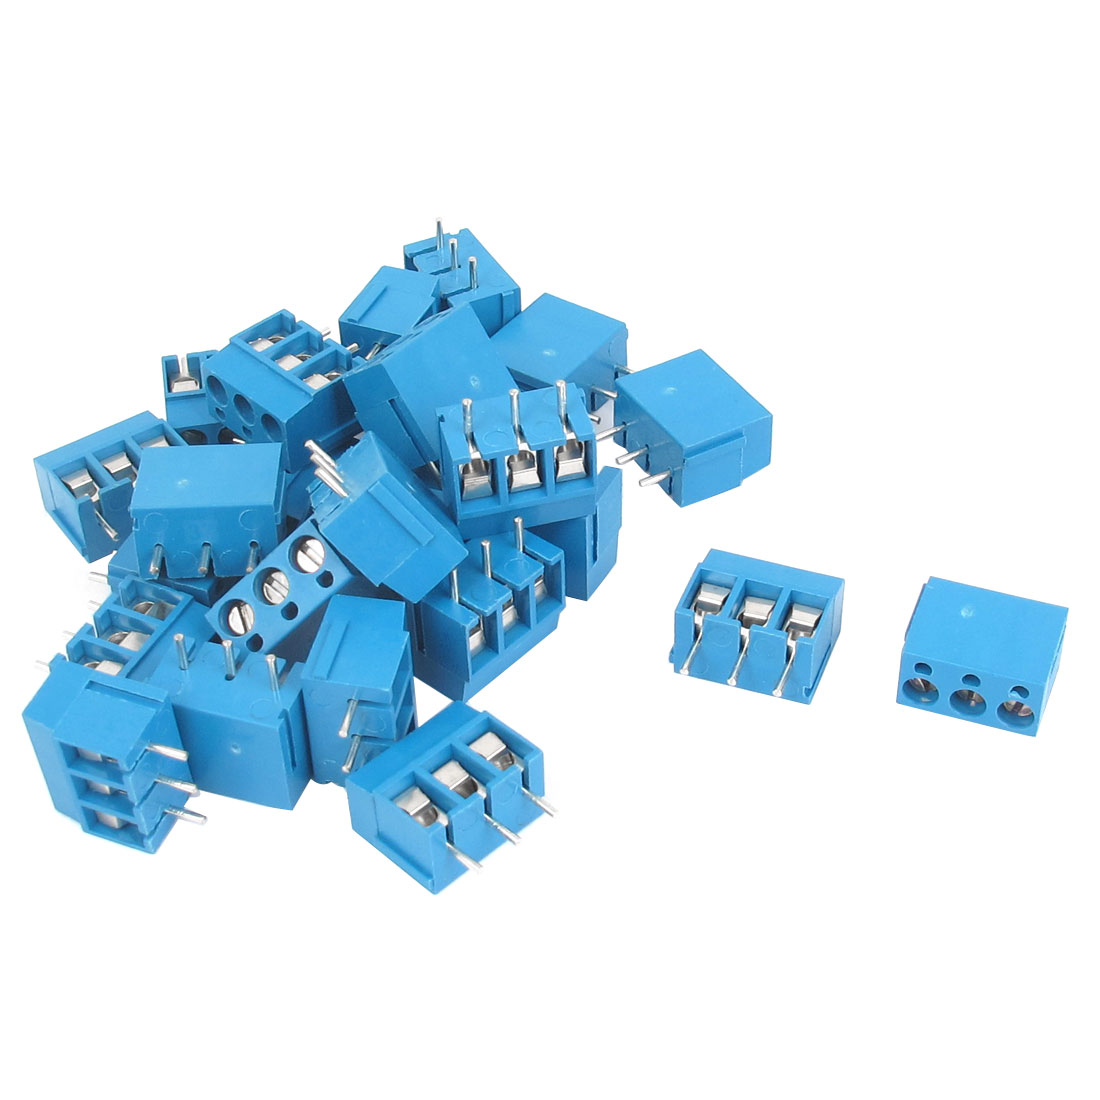 25pcs AC 300V 16A 3 Poles 5mm Pitch PCB Mount Screw Terminal Block Connector for AWG14-22 Cable